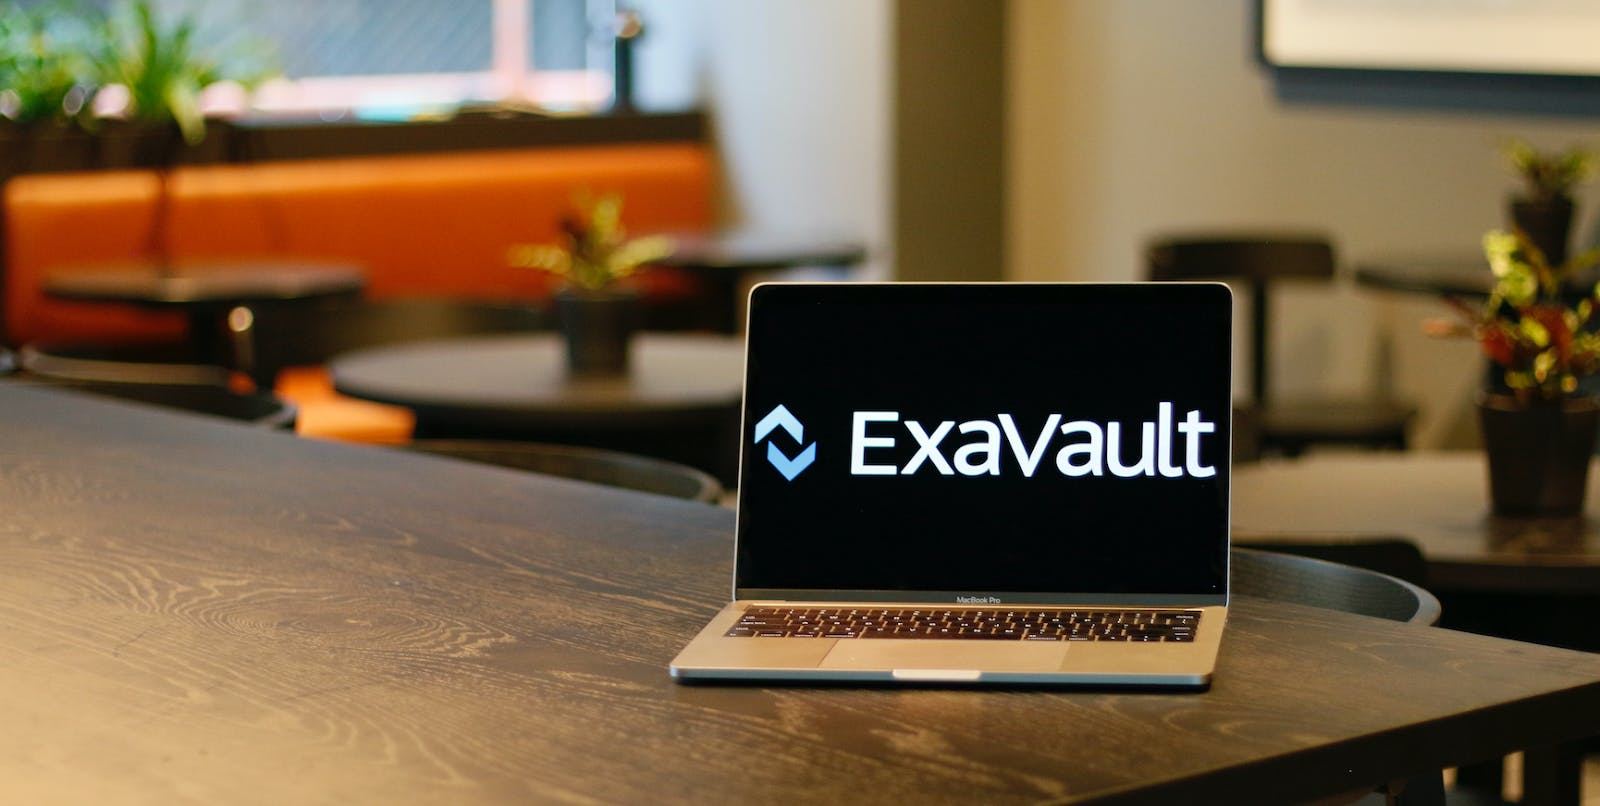 Laptop open showing logo for ExaVault SFTP file transfer service.